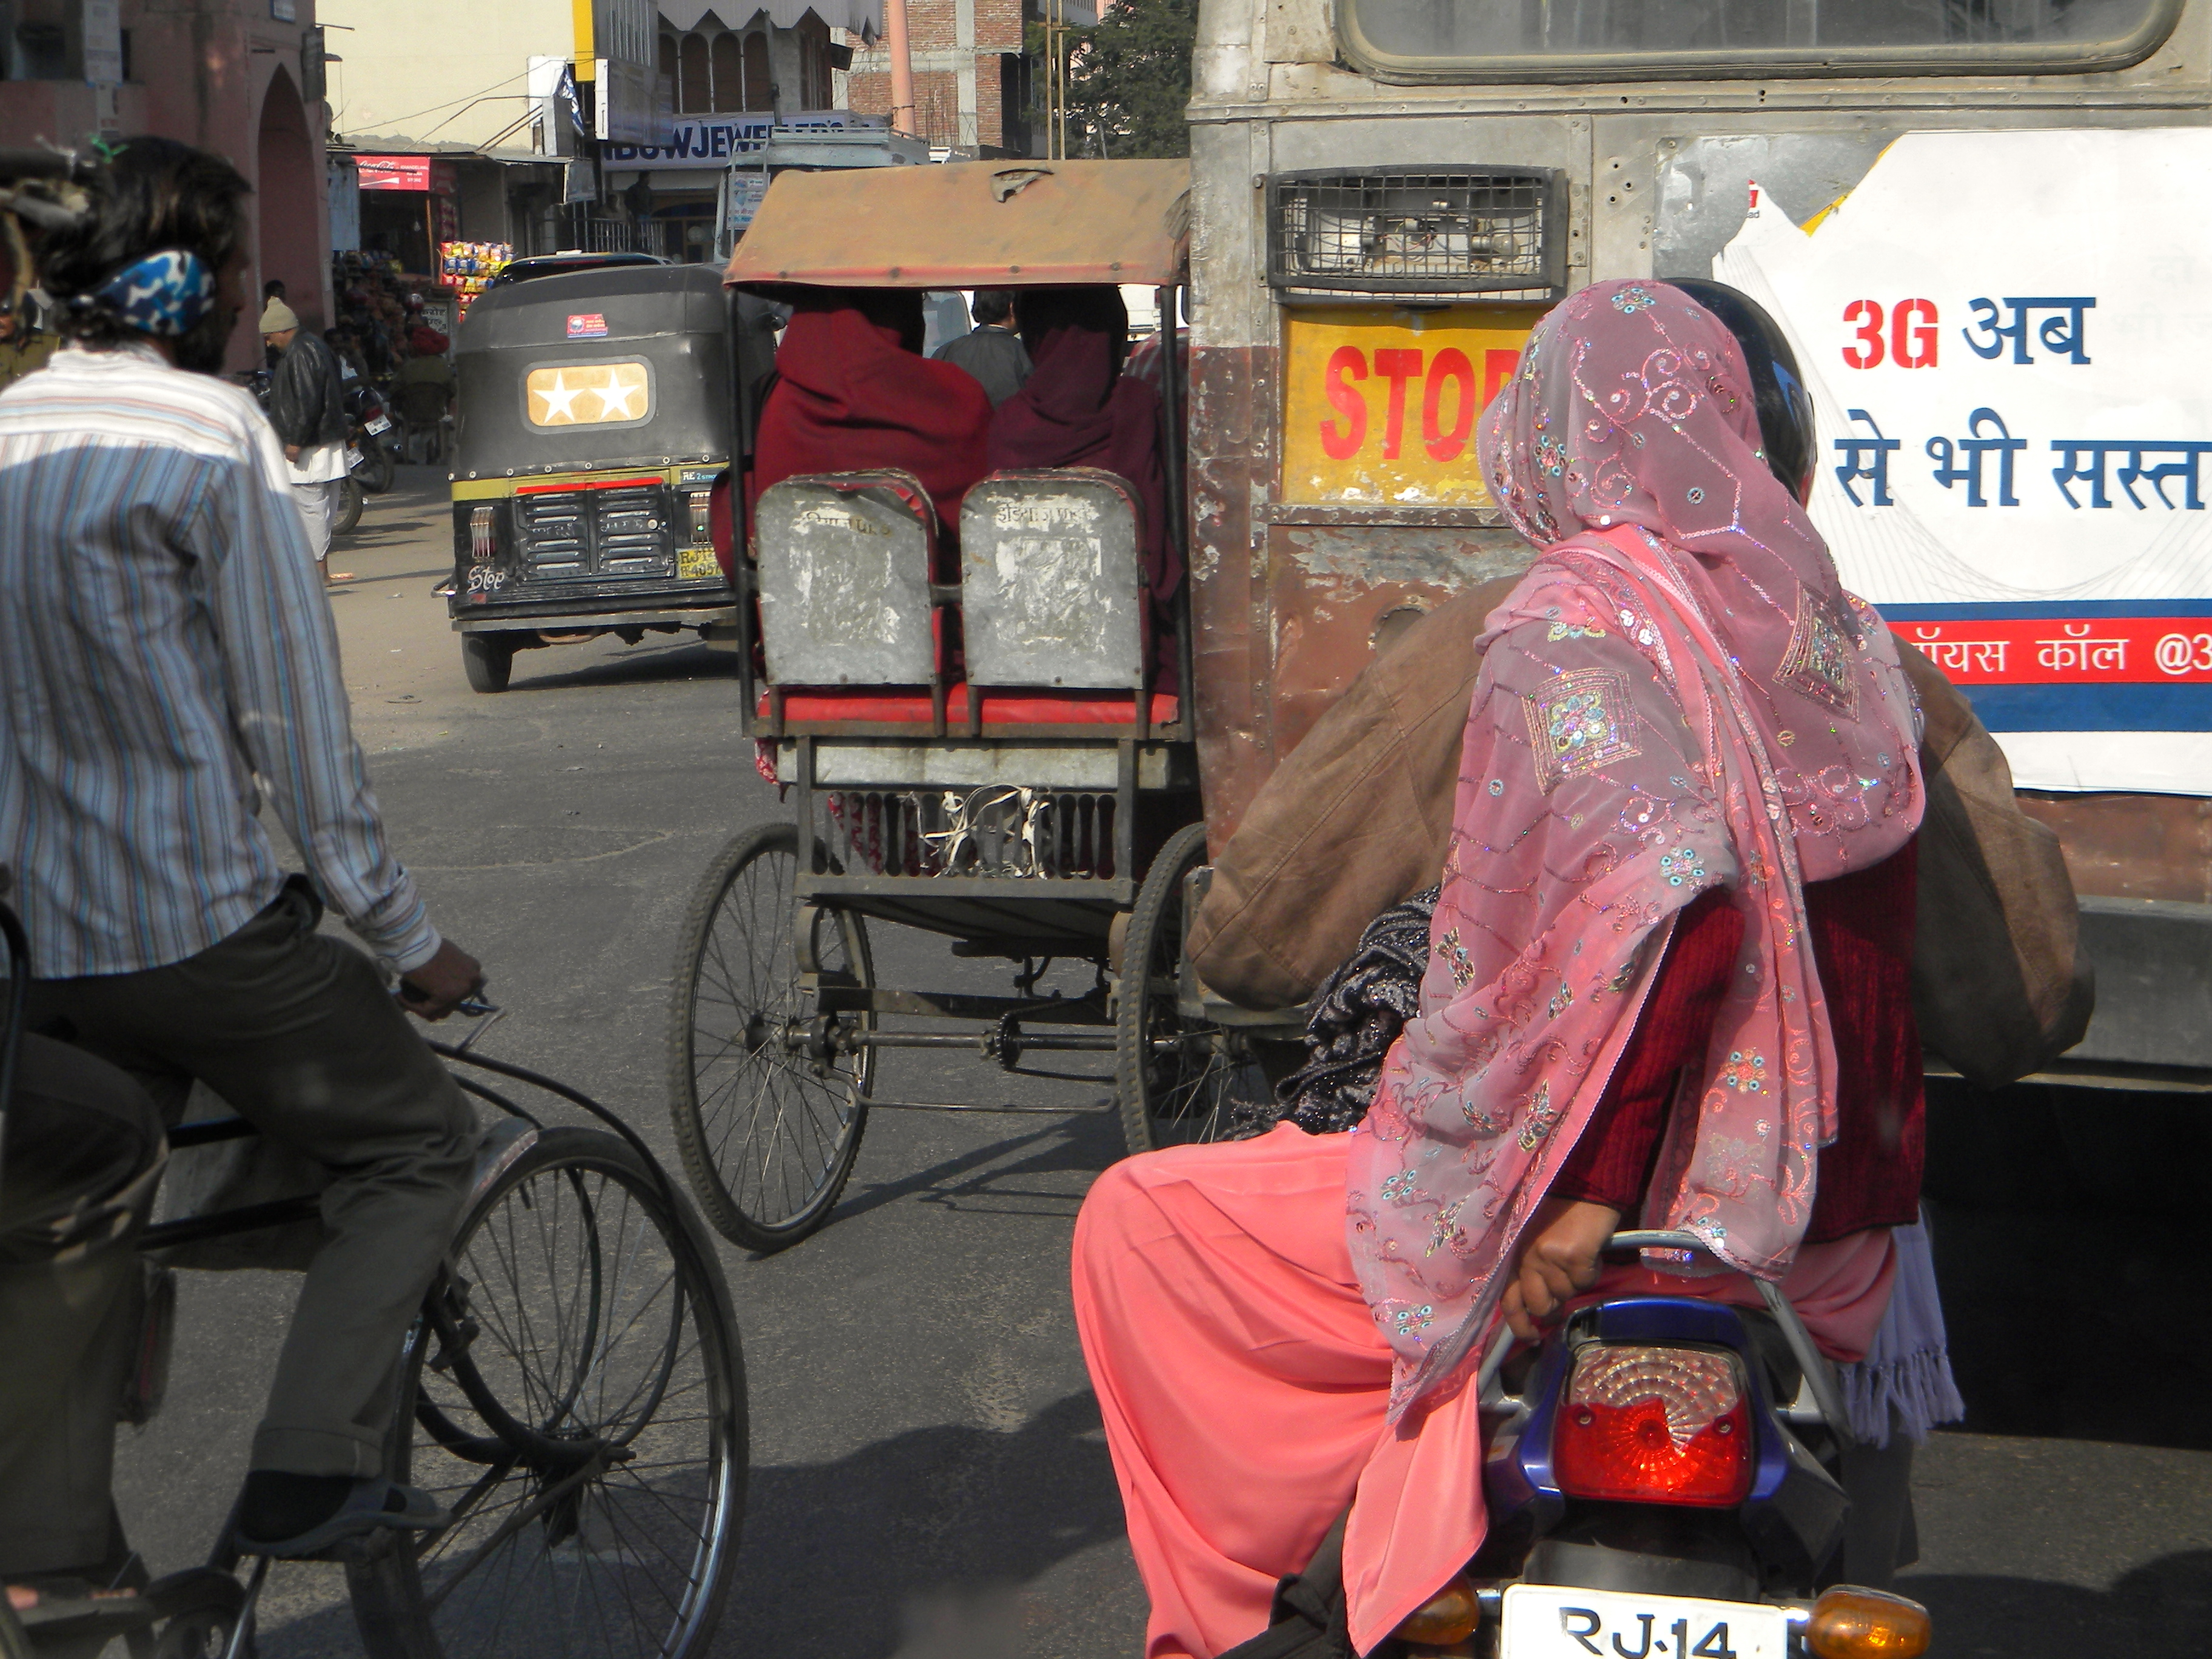 Going, India 2010